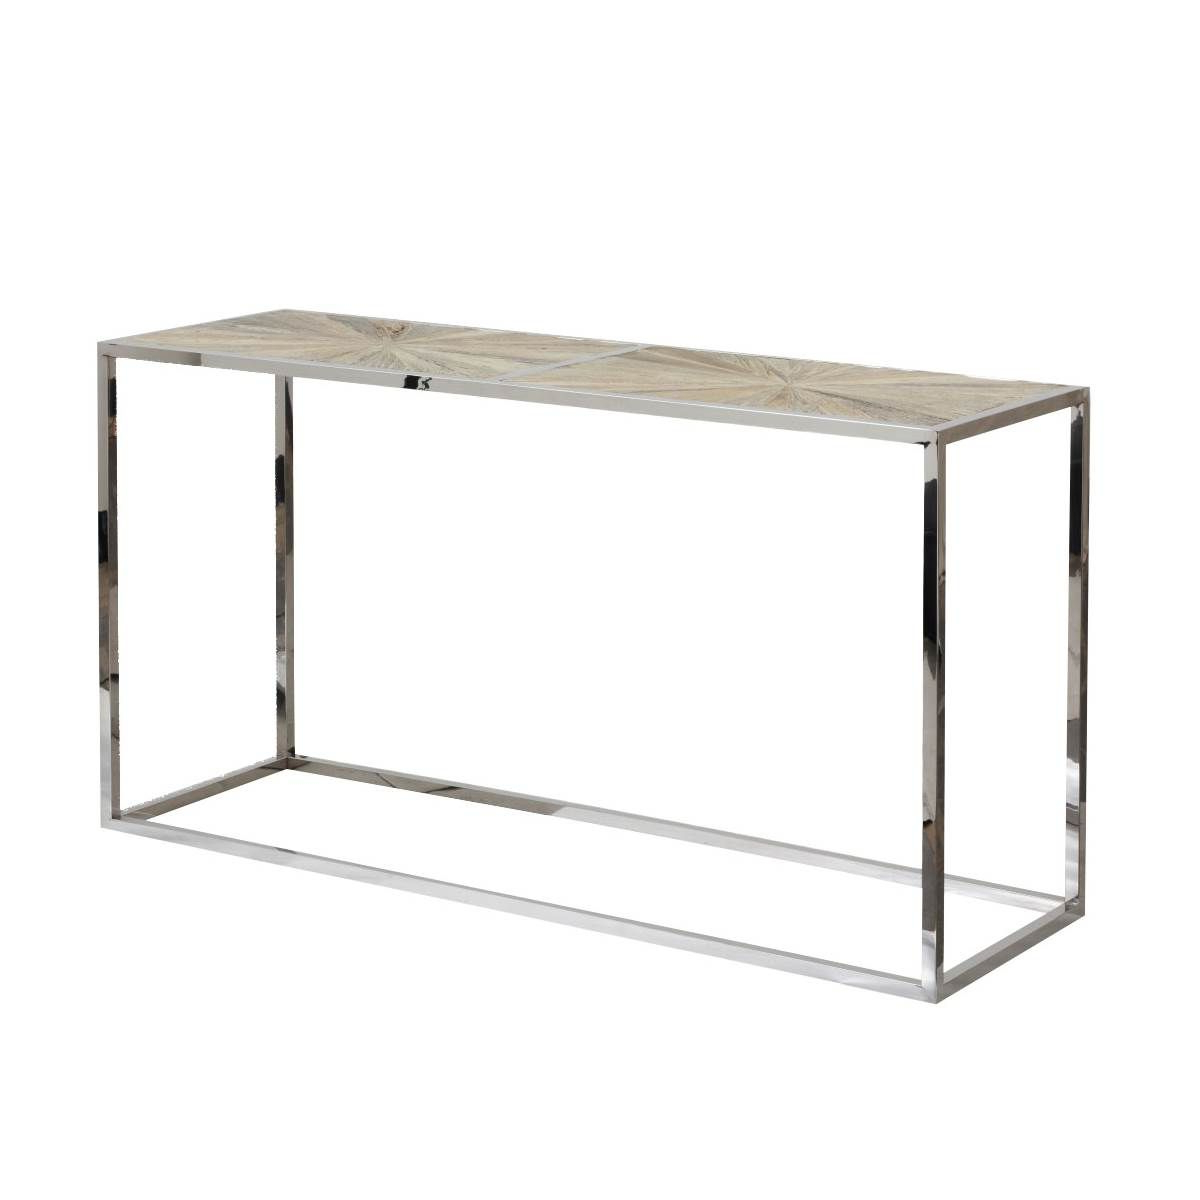 Parquet Console Table | Marshall | Pinterest Throughout Parsons Concrete Top & Stainless Steel Base 48X16 Console Tables (View 17 of 20)